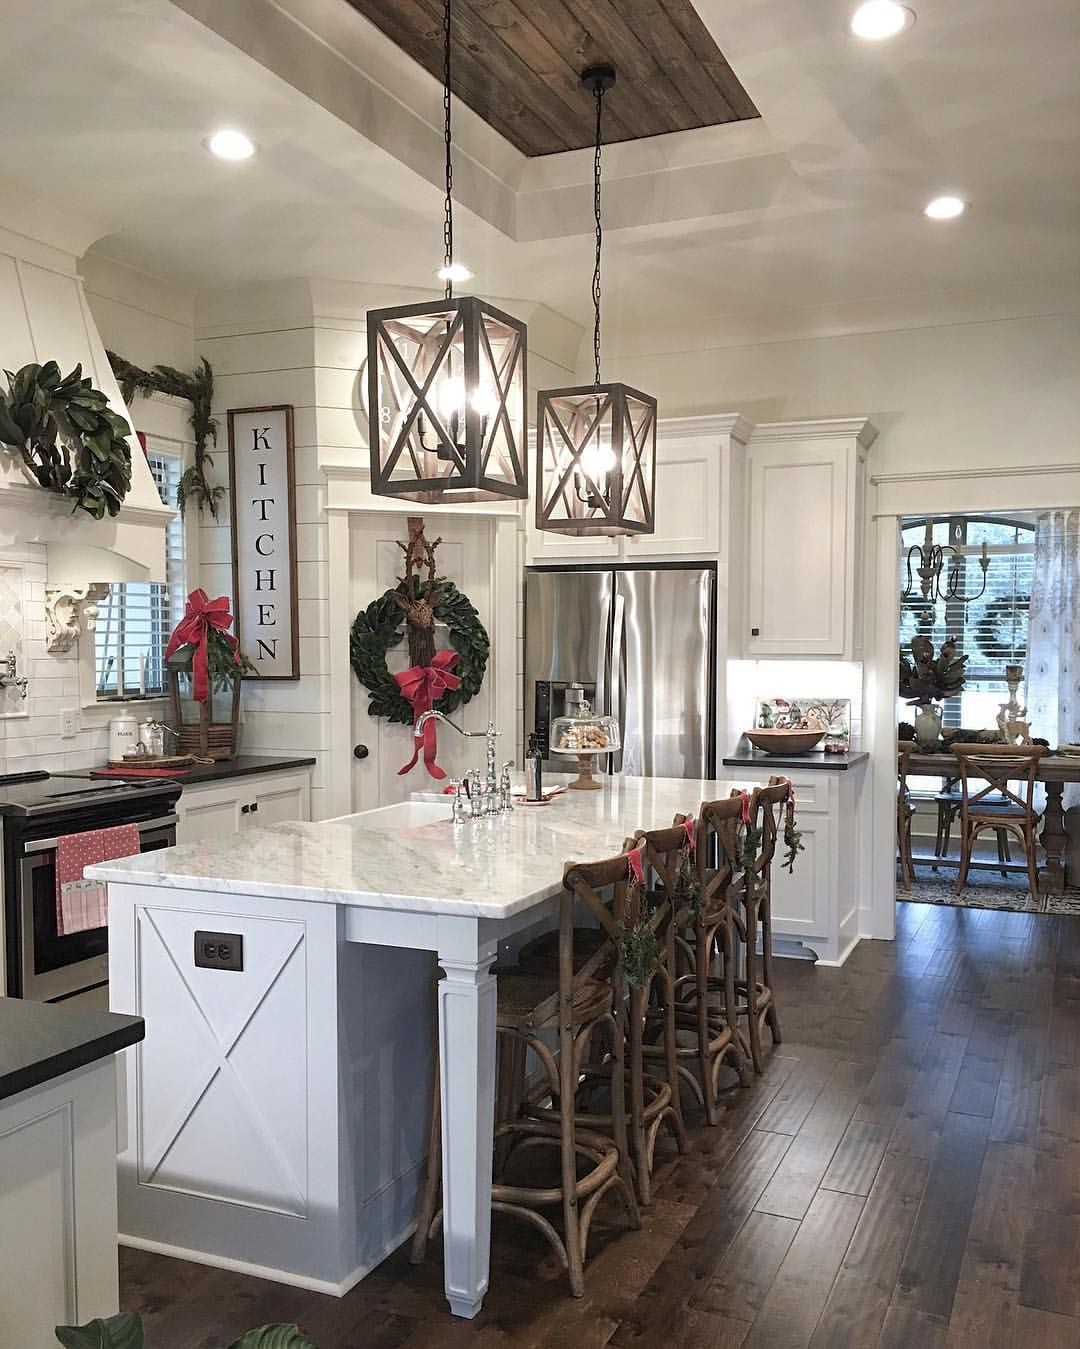 Pin by sarah stinebaugh on home sweet home in pinterest